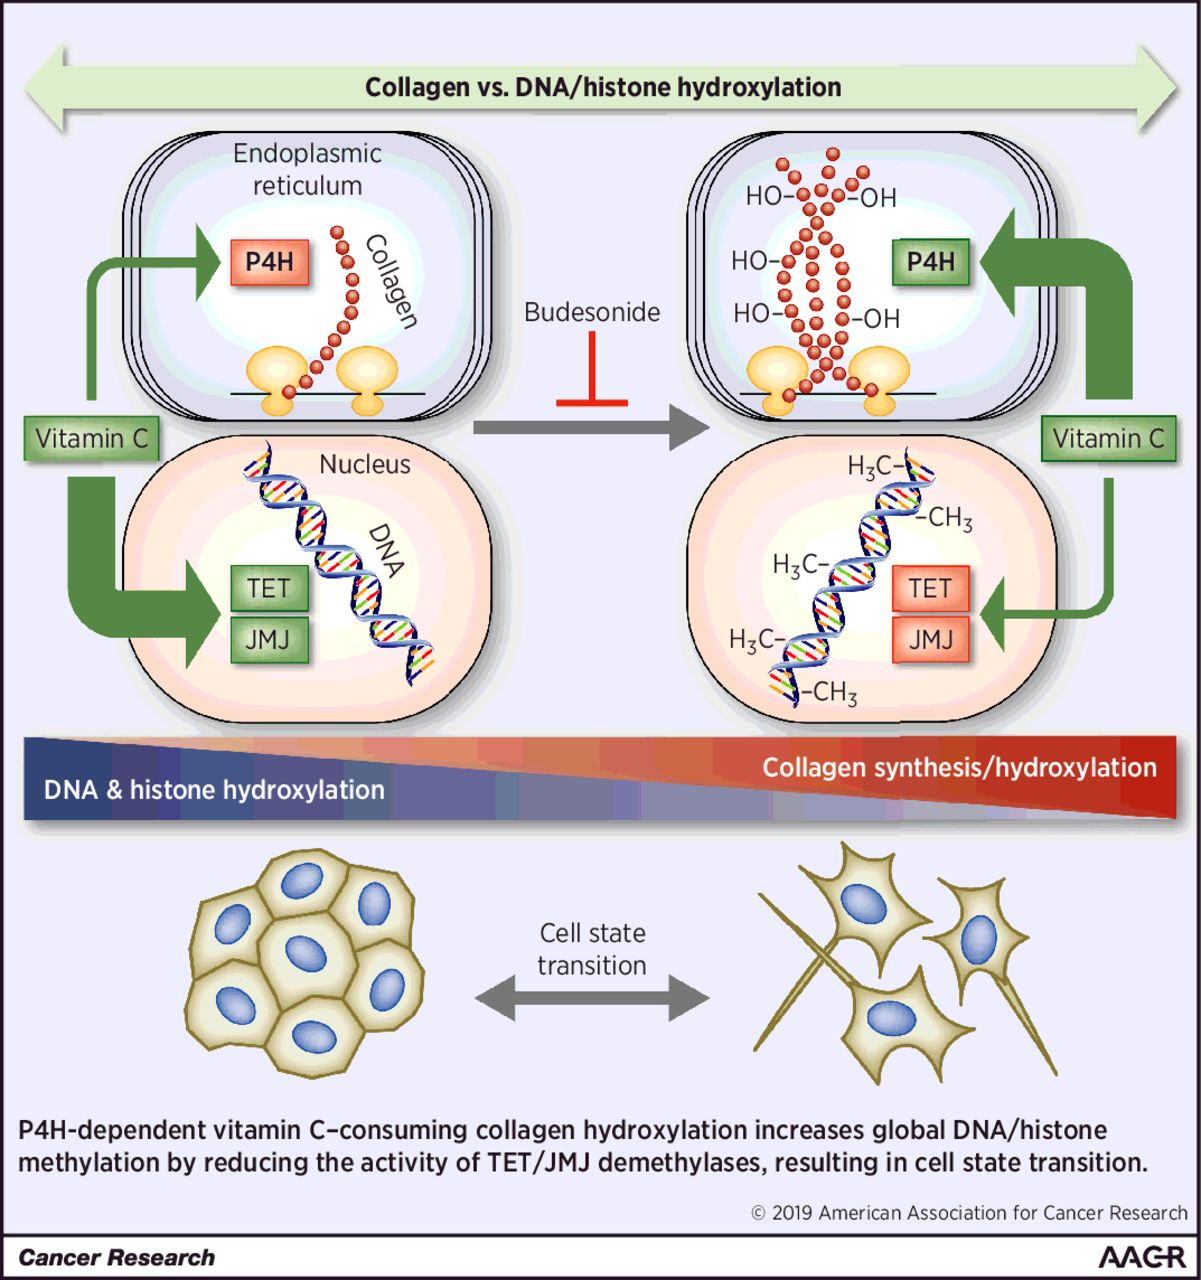 Collagen Prolyl Hydroxylation-Dependent Metabolic Perturbation Governs Epigenetic Remodeling and Mesenchymal Transition in Pluripotent and Cancer Cells